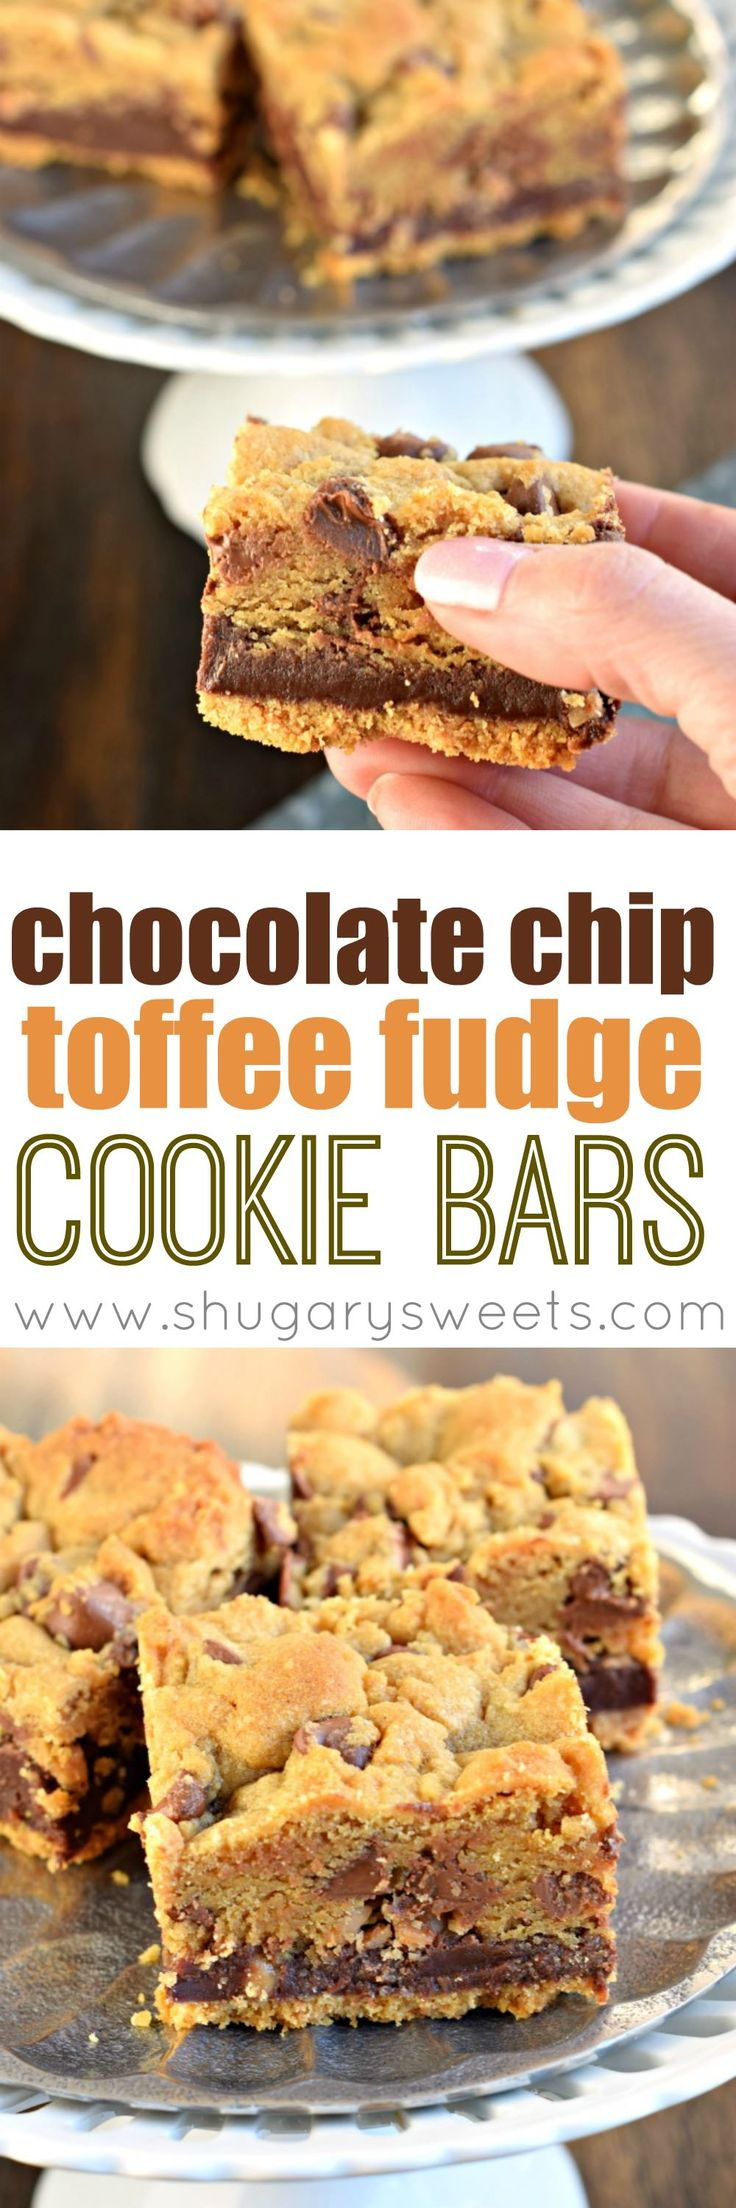 Chocolate Chip Toffee Fudge Cookie Bars with a graham cracker crust and a layer of toffee fudge! One decadent dessert recipe.